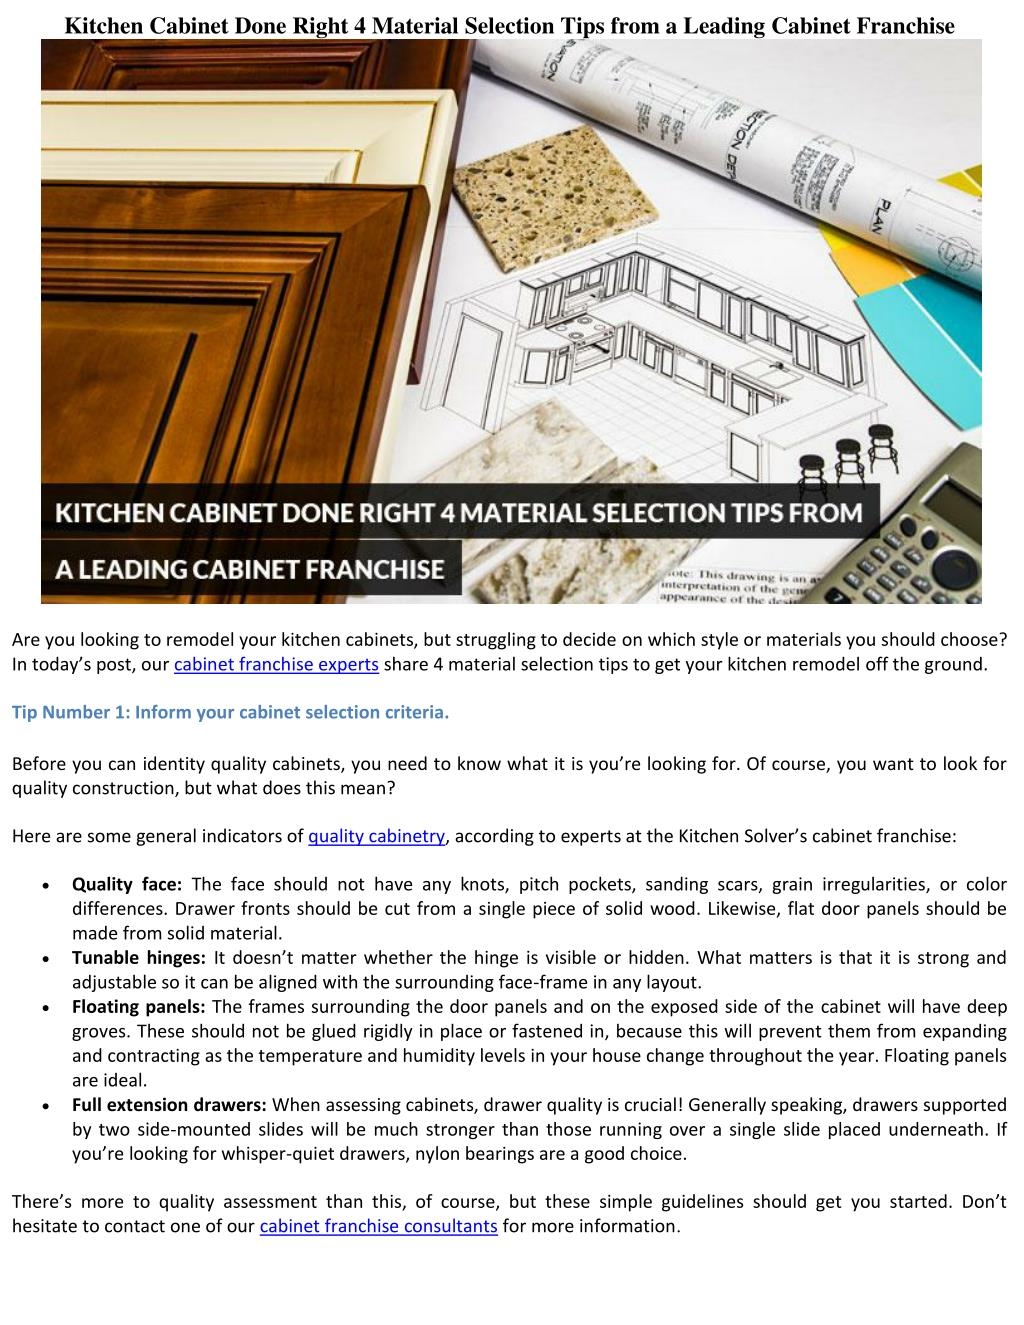 Kitchen Cabinet Done Right: 4 Material Selection Tips from a Leading Cabinet Franchise - PowerPoint PPT Presentation